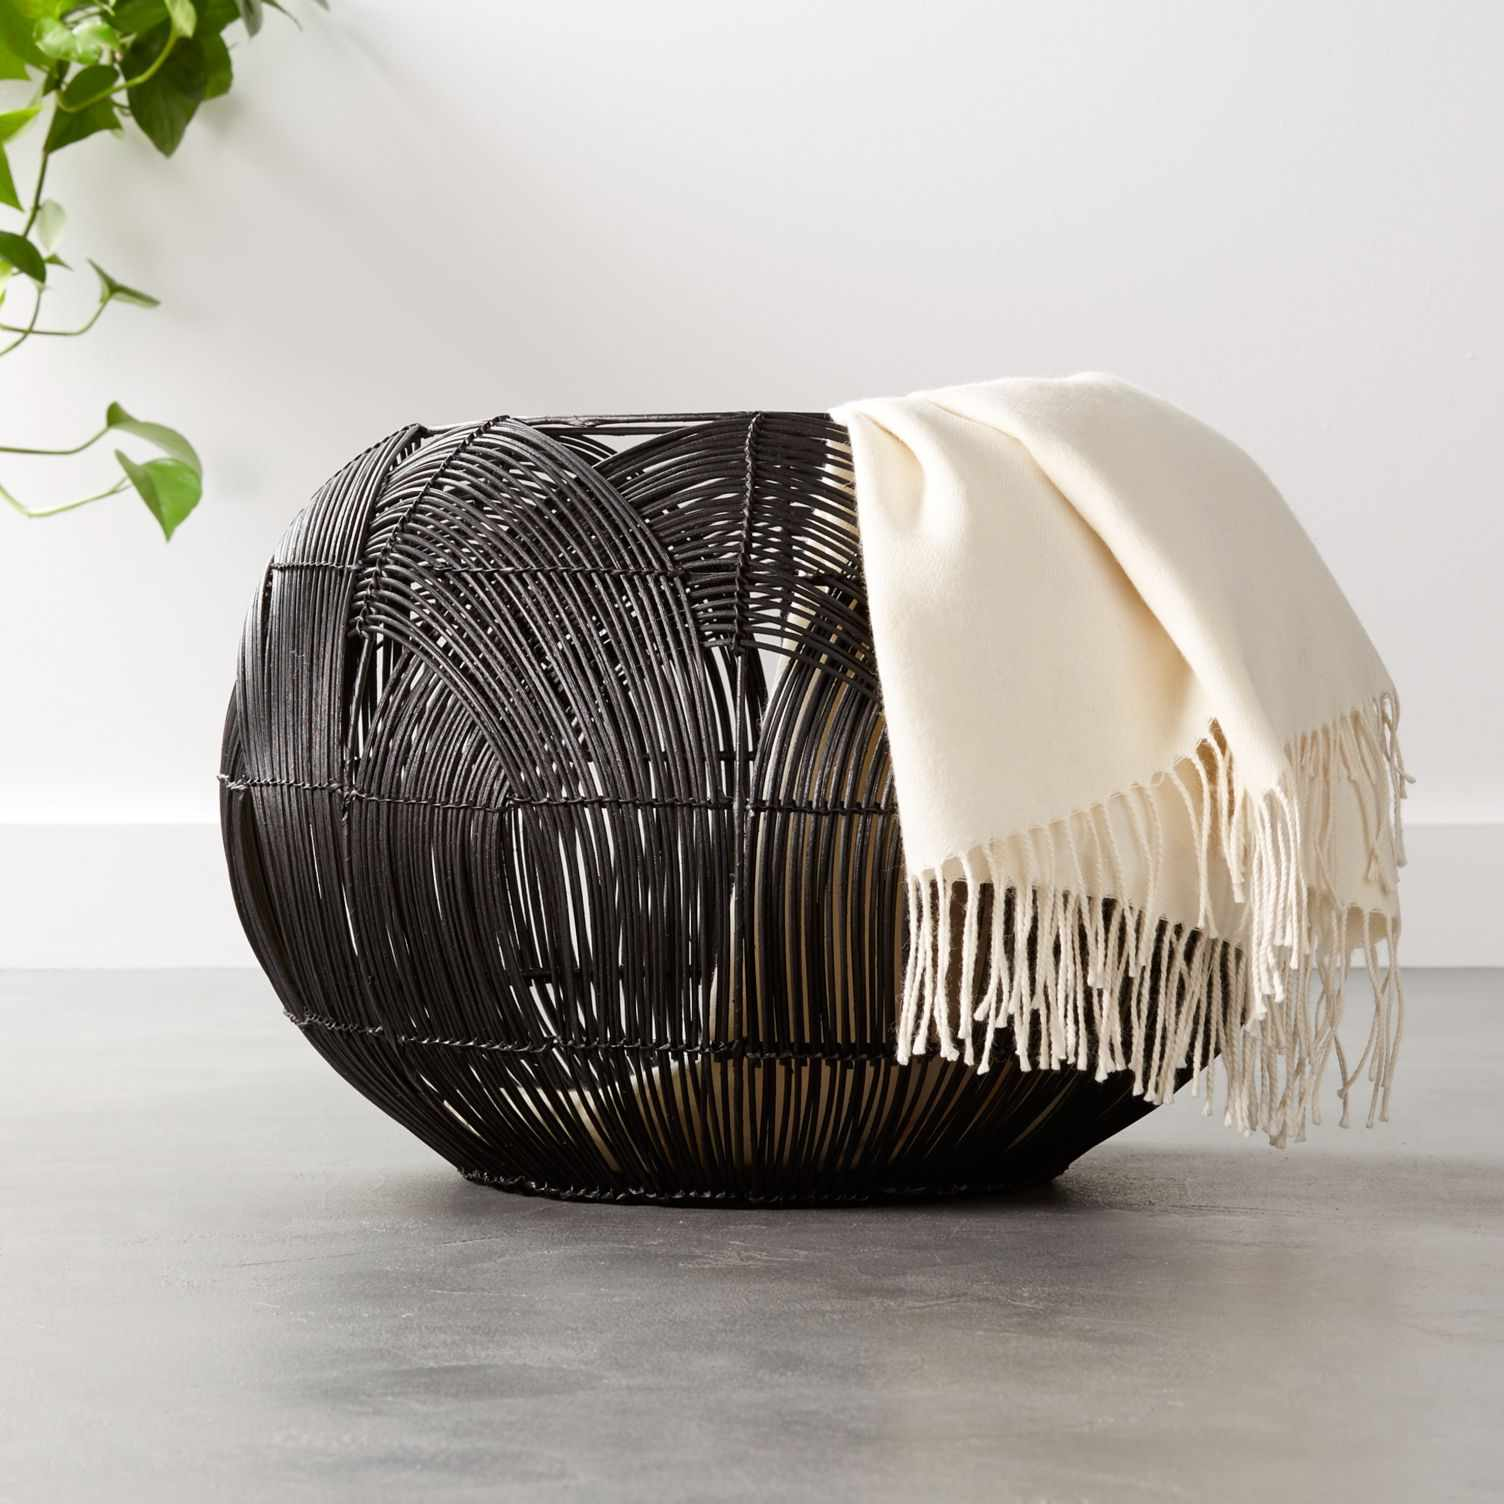 A round black woven rattan basket with a blanket draped over the side.